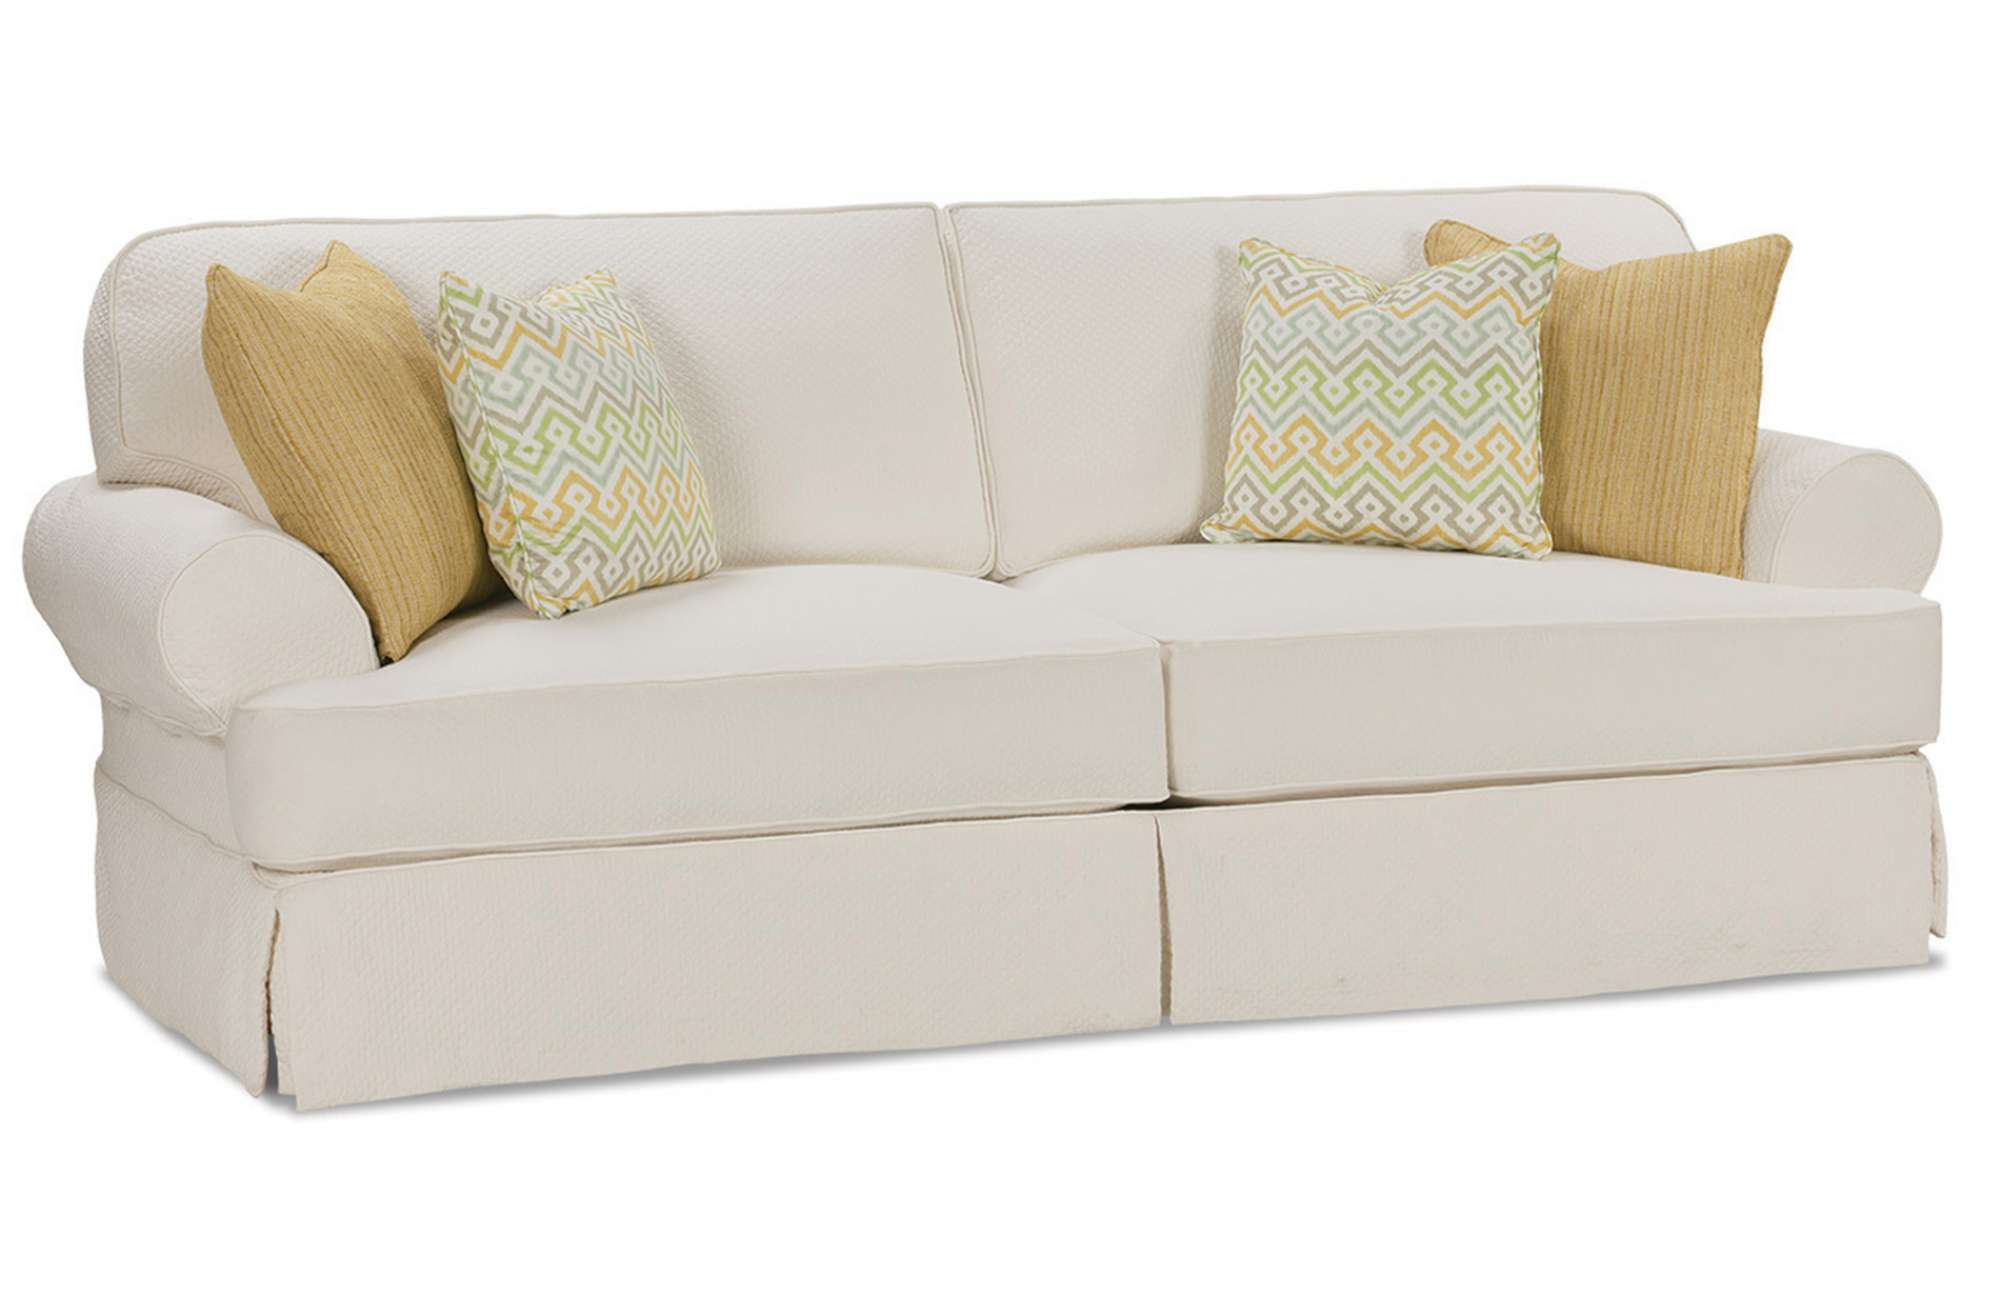 Settee Slipcover | Rowe Furniture Slipcovers | Chair and Ottoman Covers